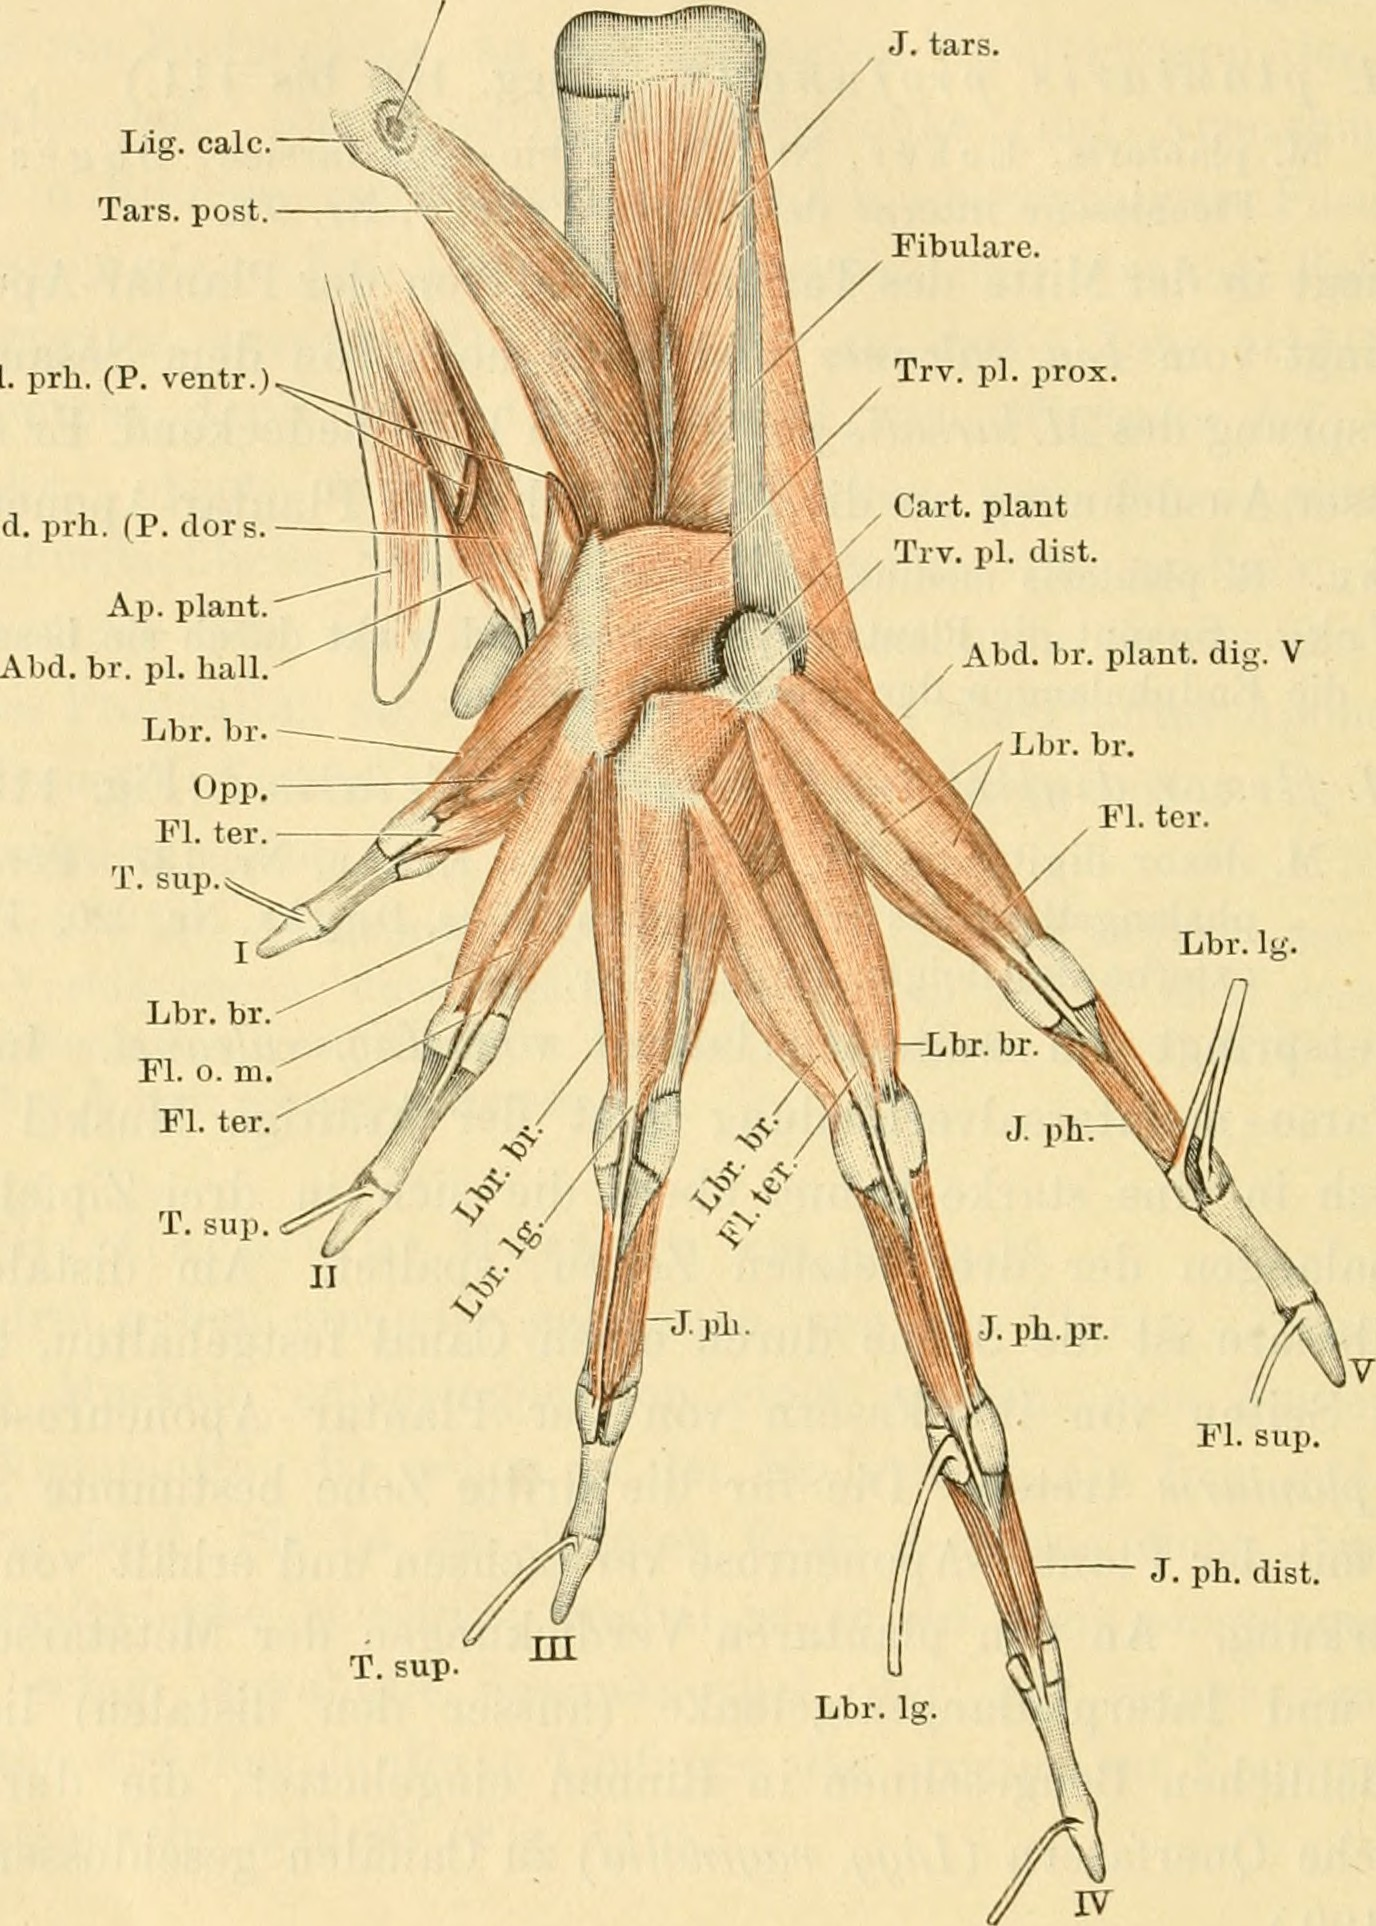 File:Anatomie des Frosches (1896) (18171041785).jpg - Wikimedia Commons